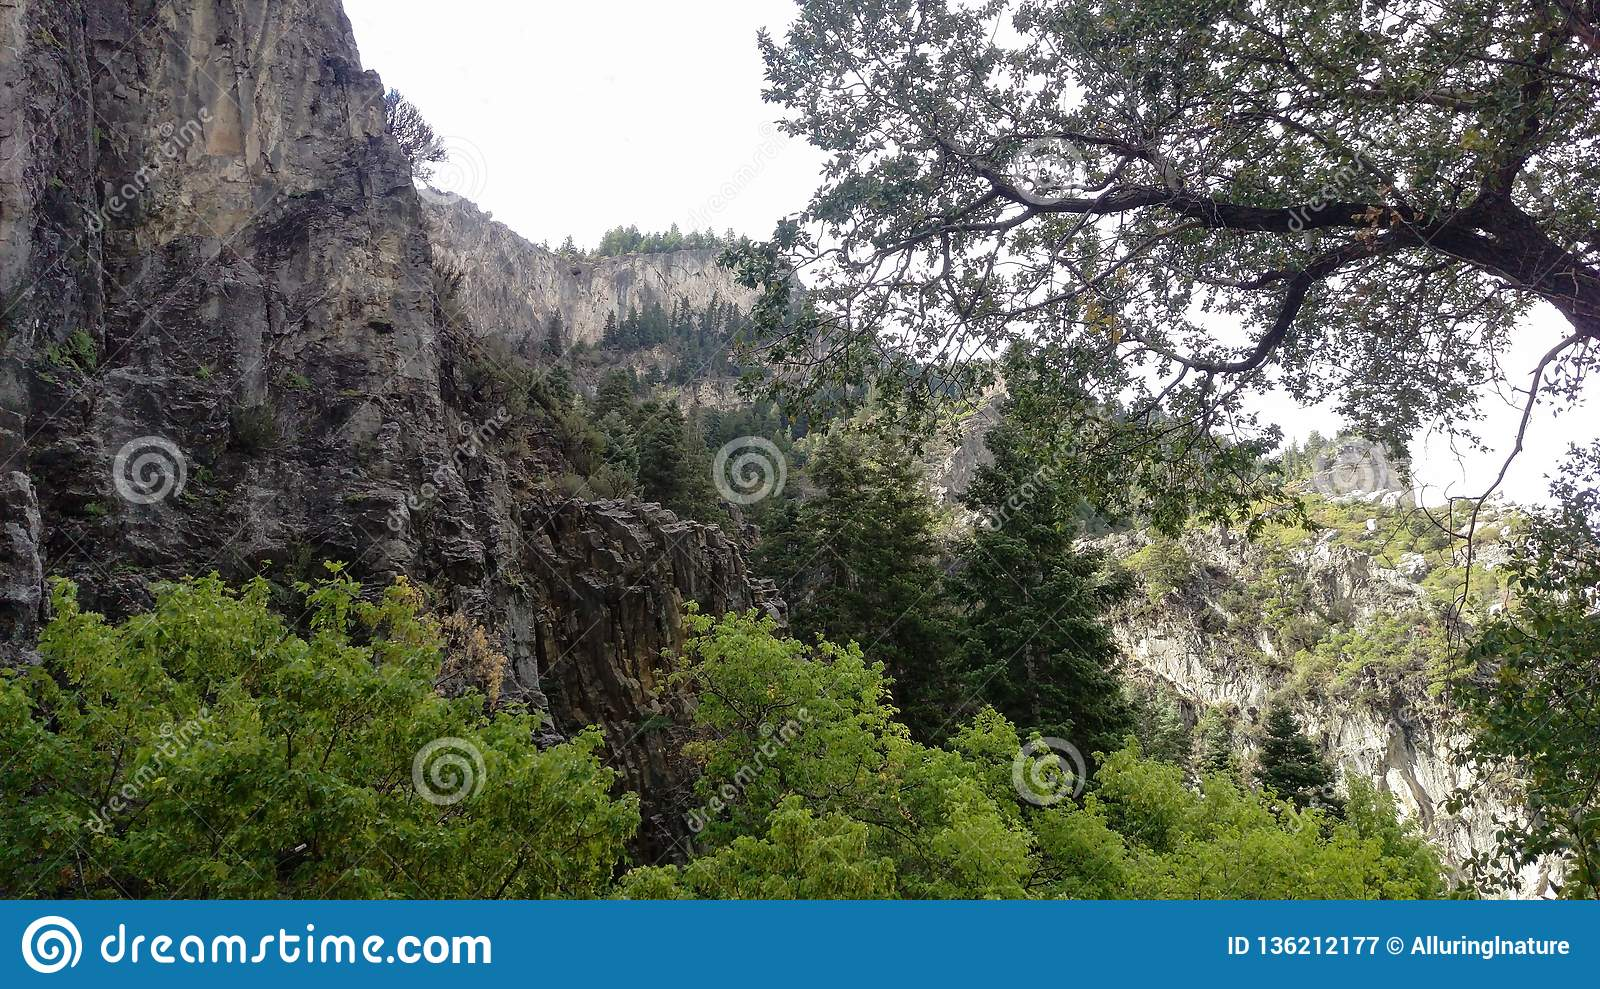 Craggy Cliff in Rock Canyon